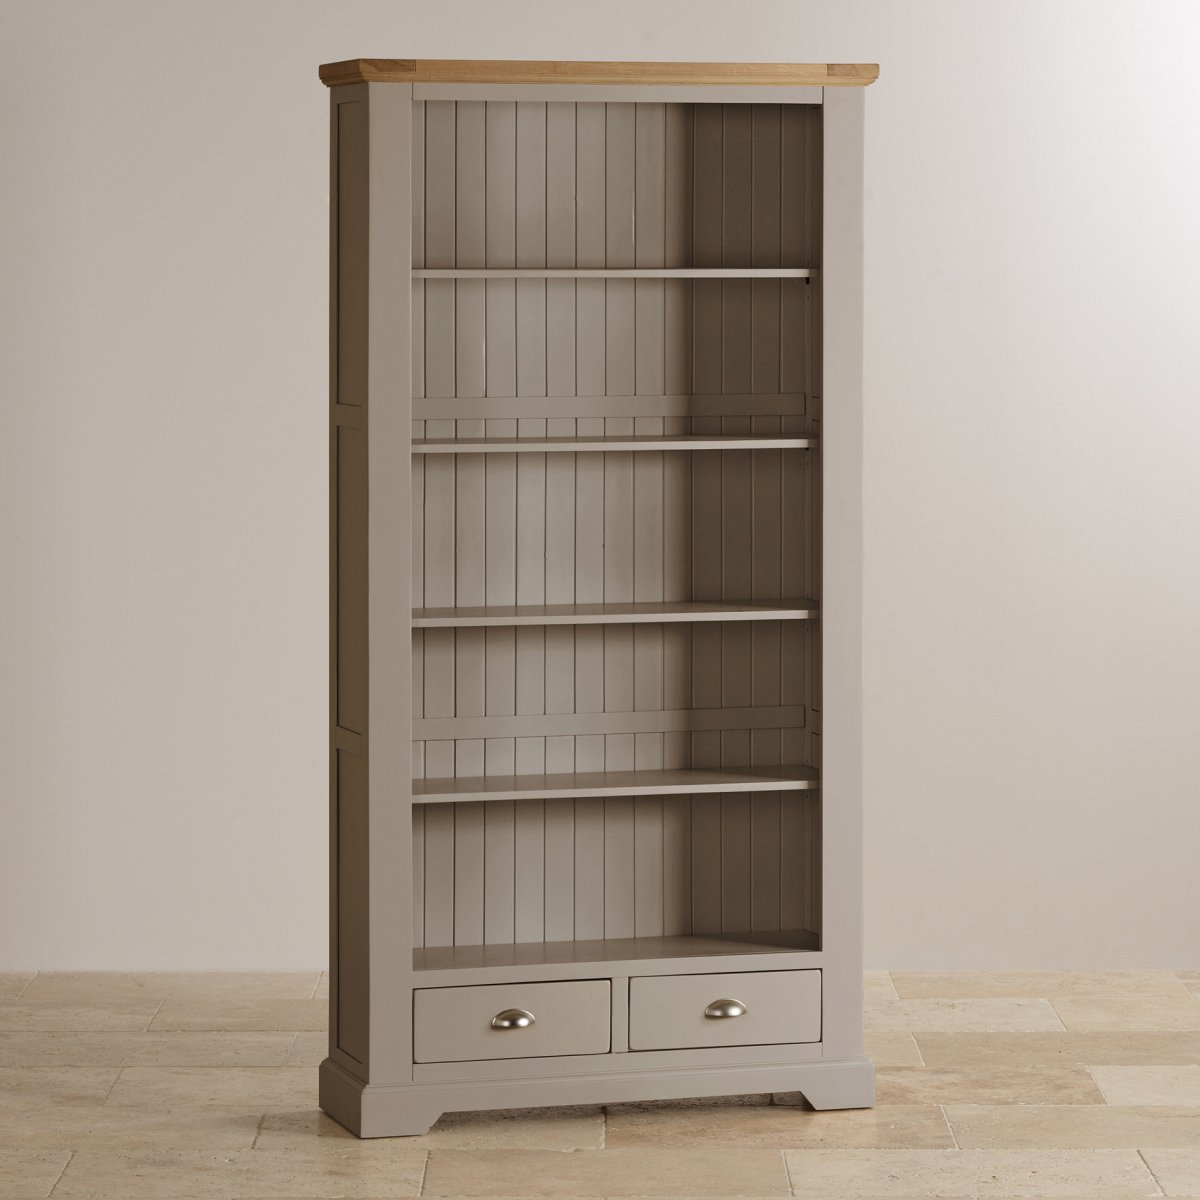 Alton oak corner cabinet oak furniture solutions - Custom Delivery St Ives Natural Oak And Light Grey Painted Tall Bookcase